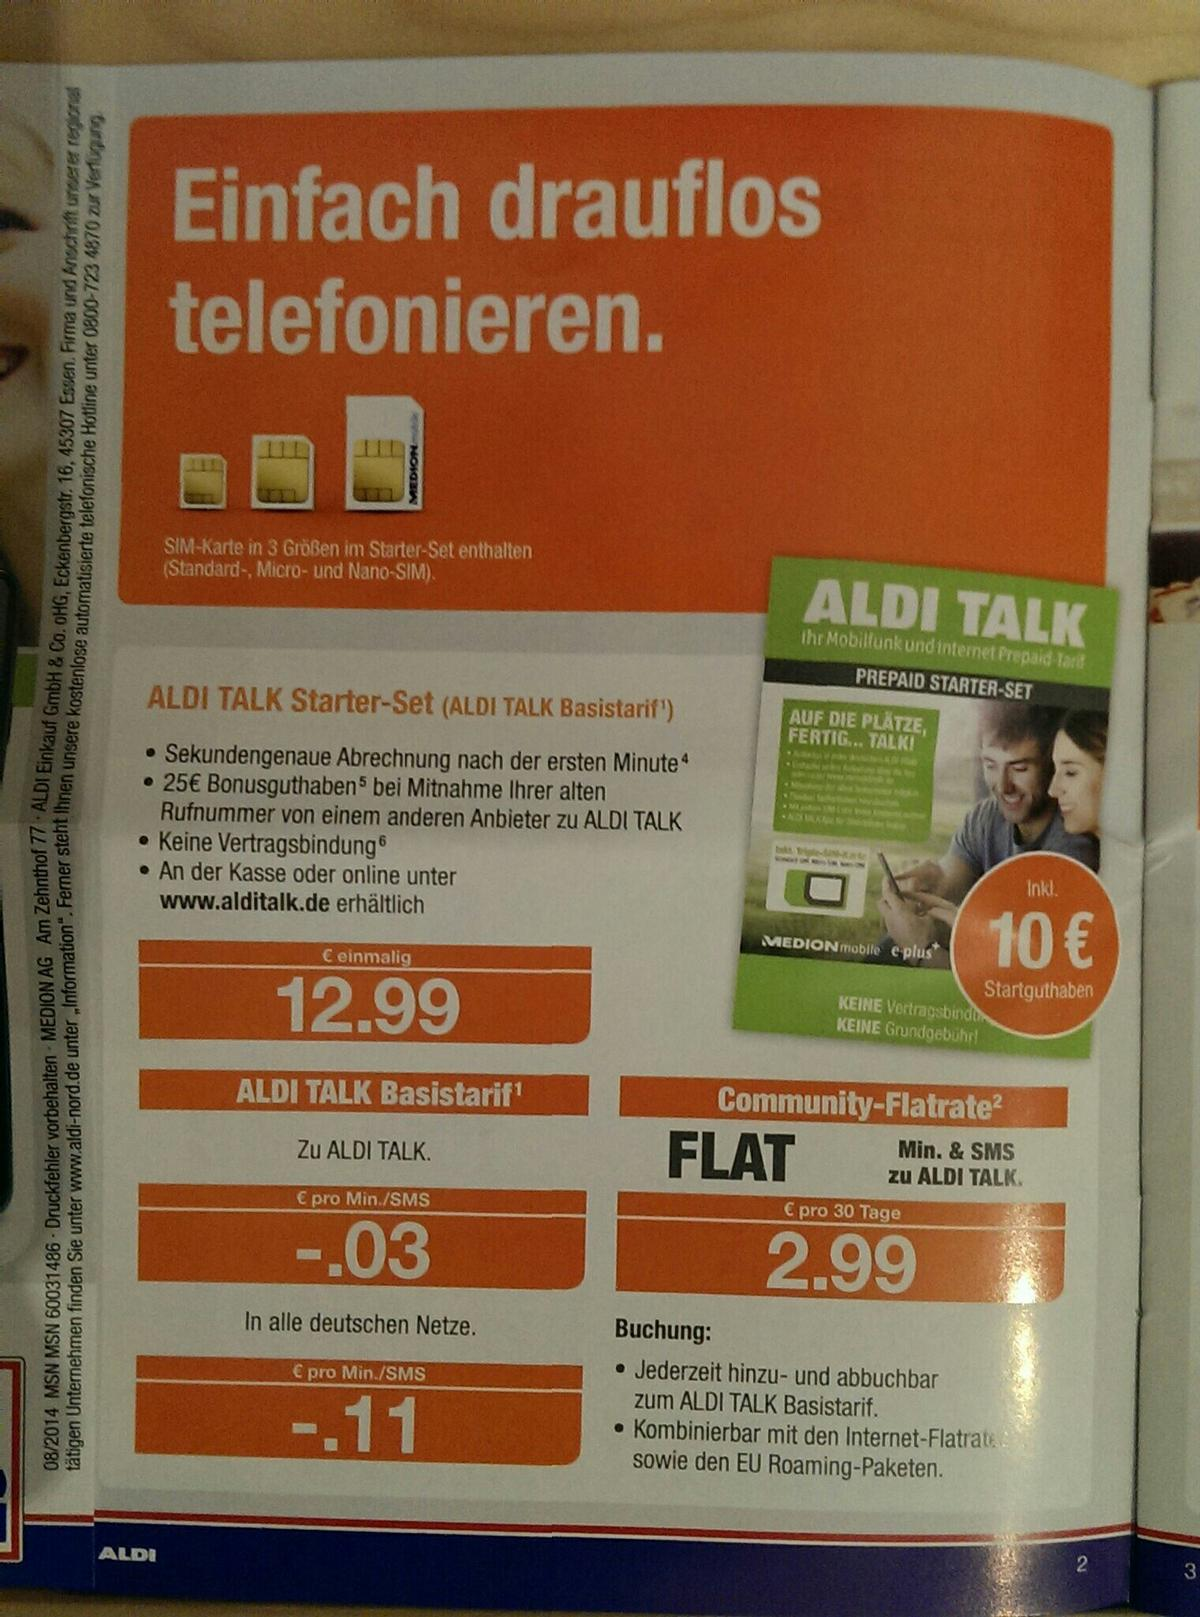 Triple Sim Karte Aldi.Top 10 Punto Medio Noticias Aldi Talk Sim Karte